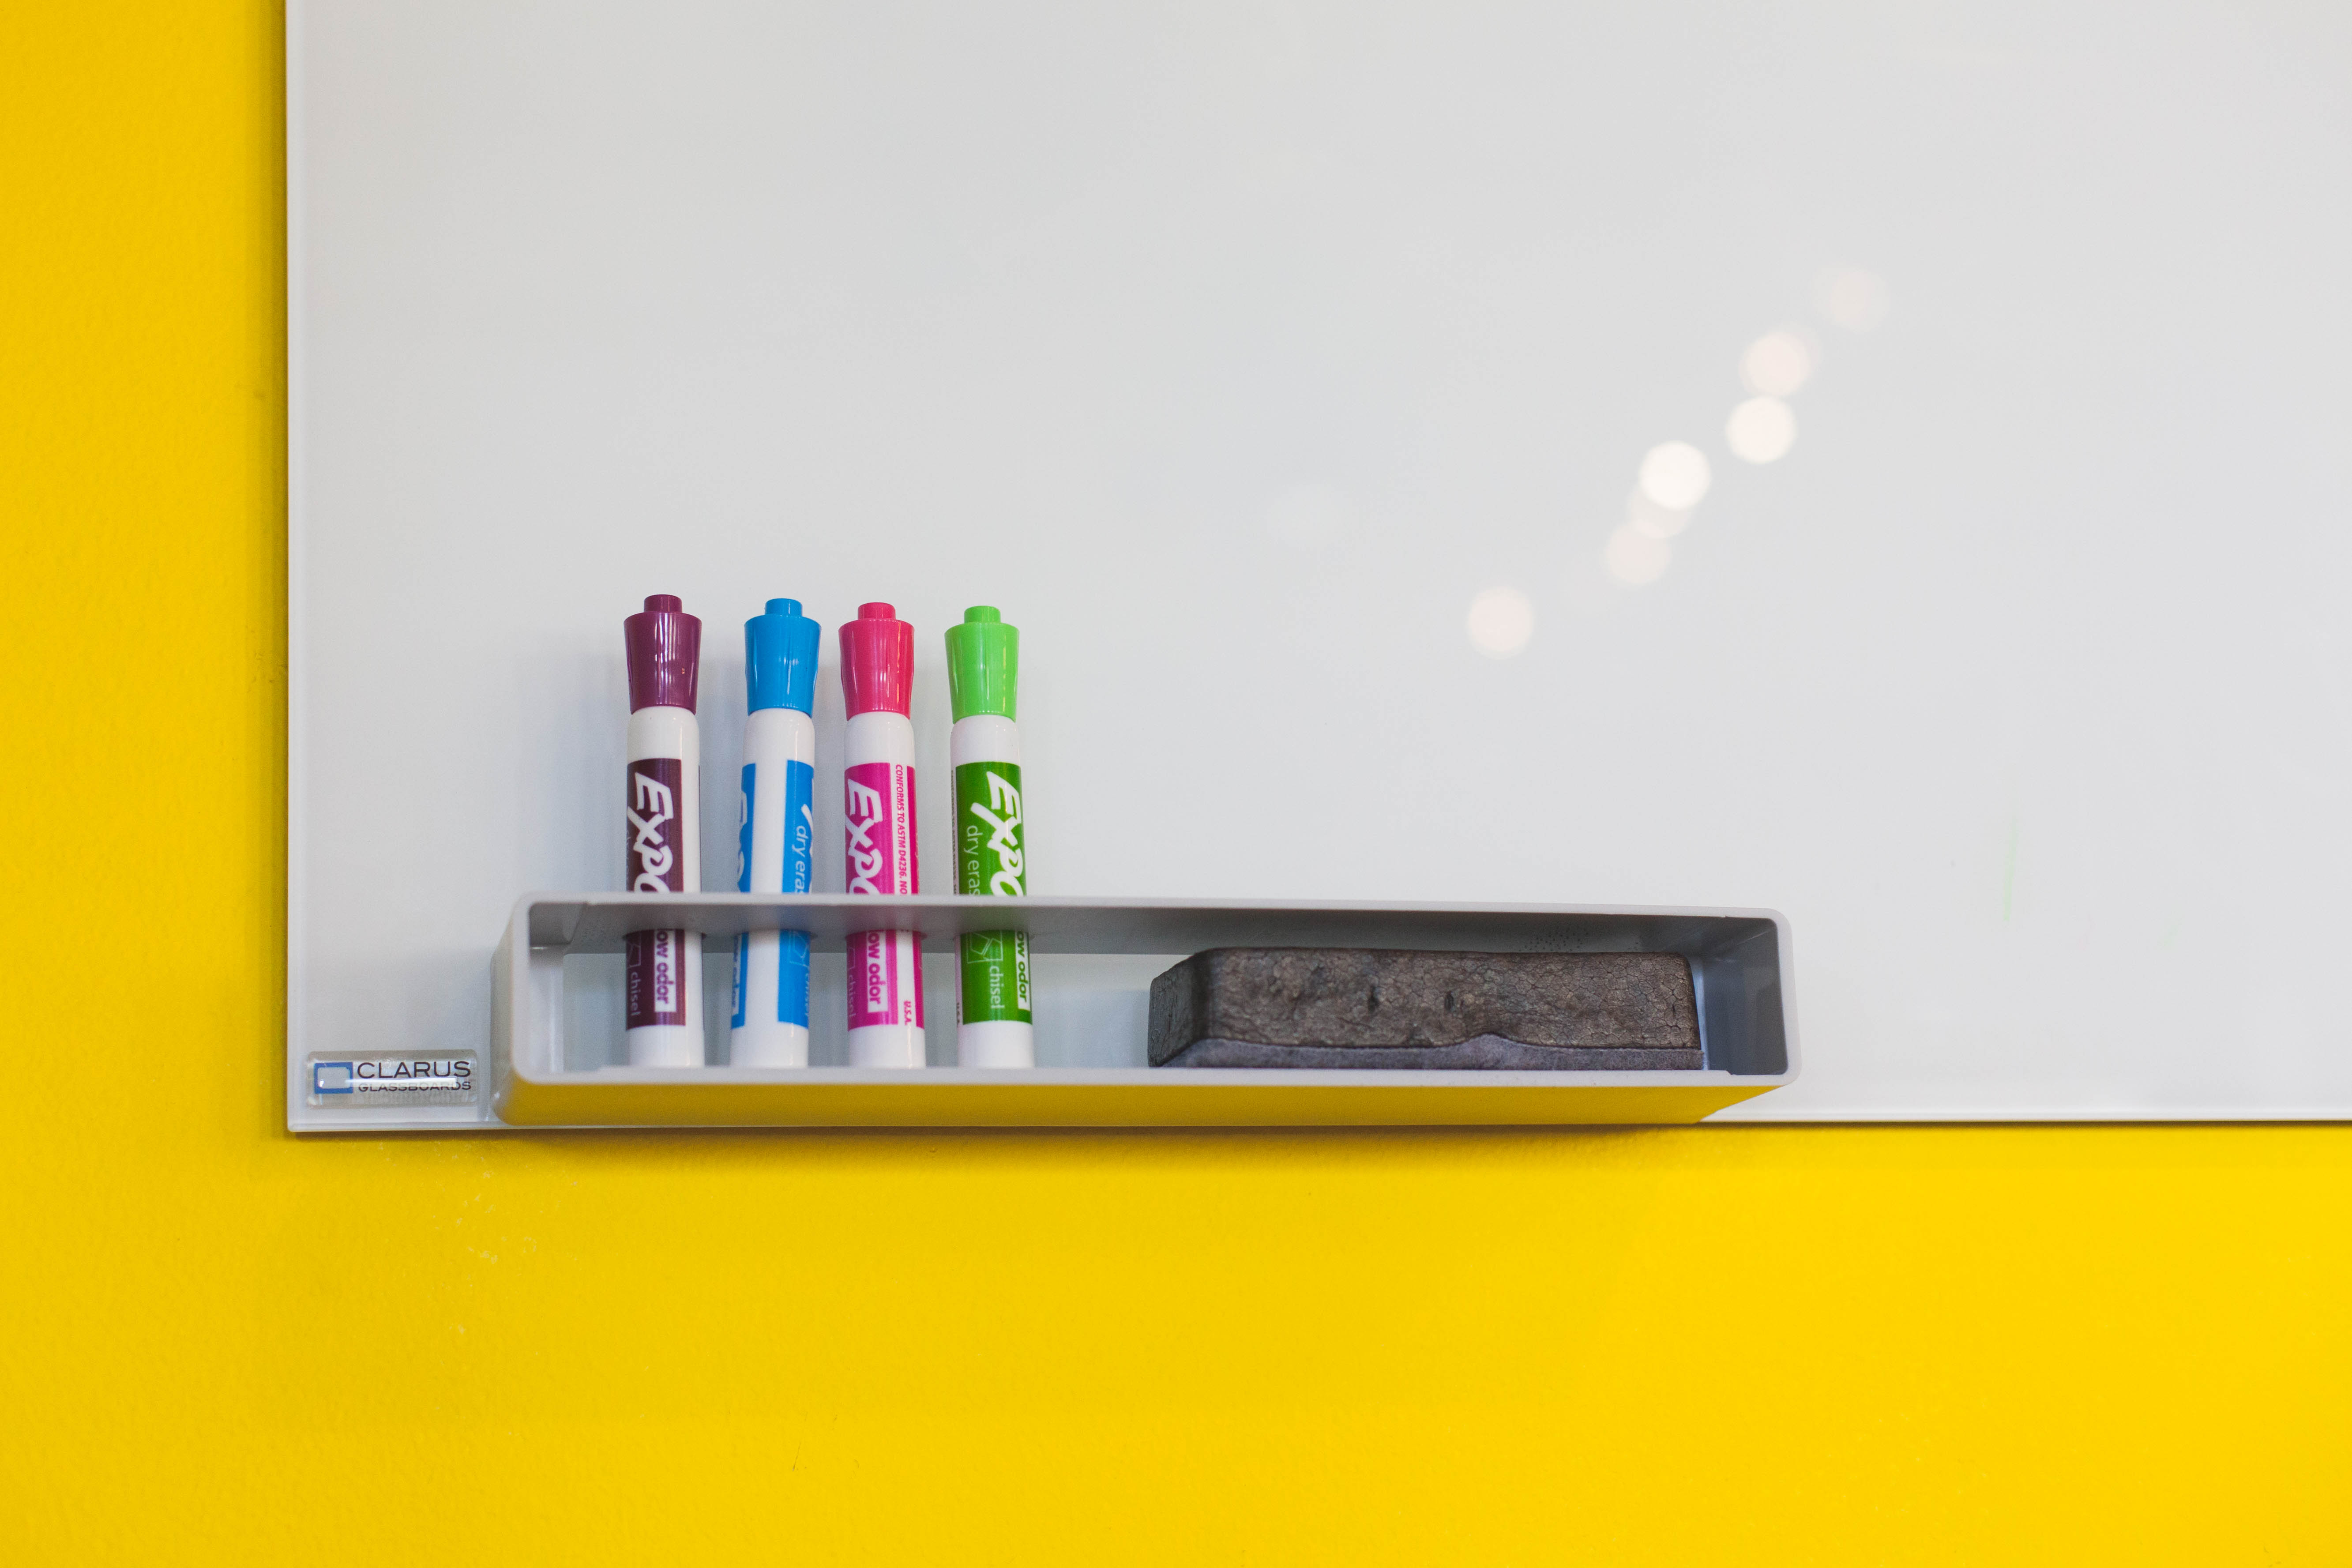 dry erase board with colorful markers